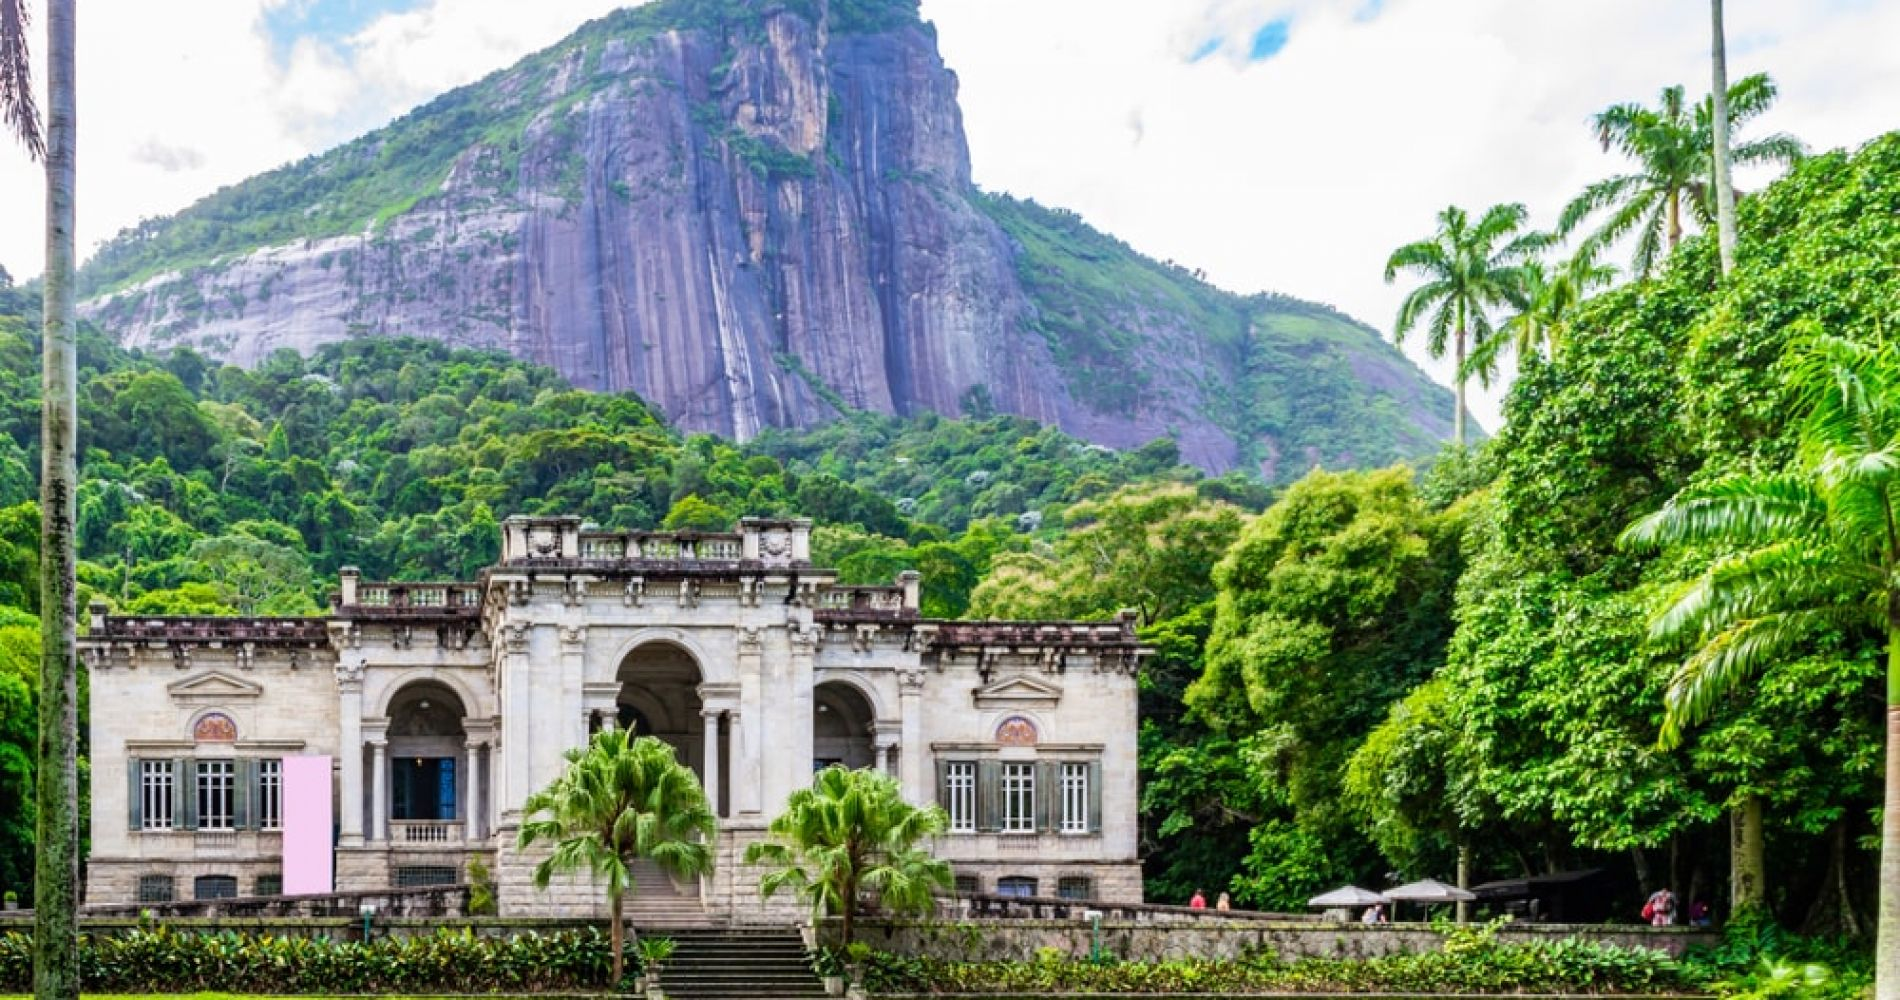 Relax at the Parque Lage in Rio de Janeiro